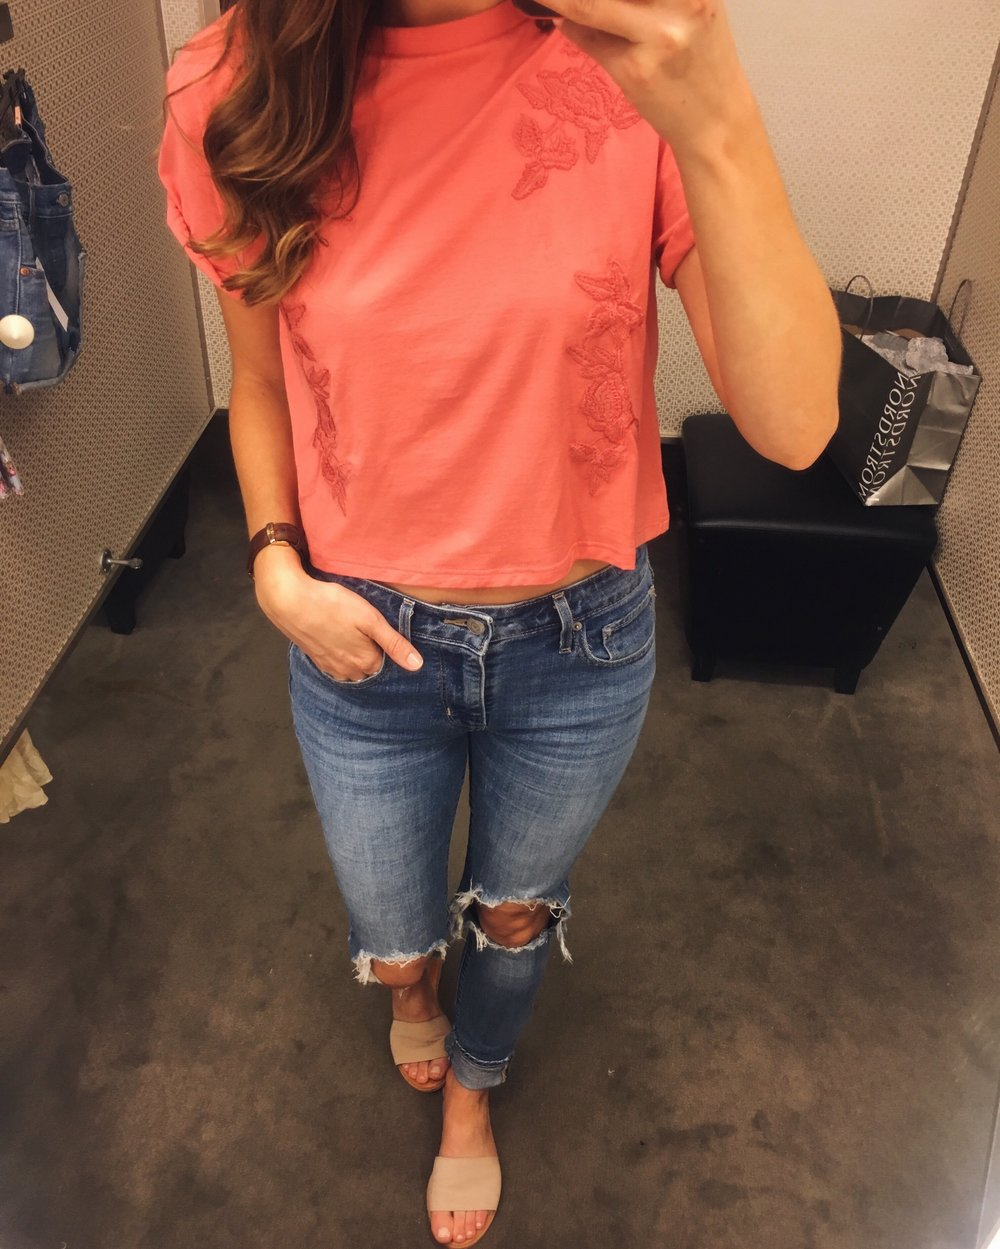 Topshop Tee | Levi's Jeans | Nordstrom Sandals